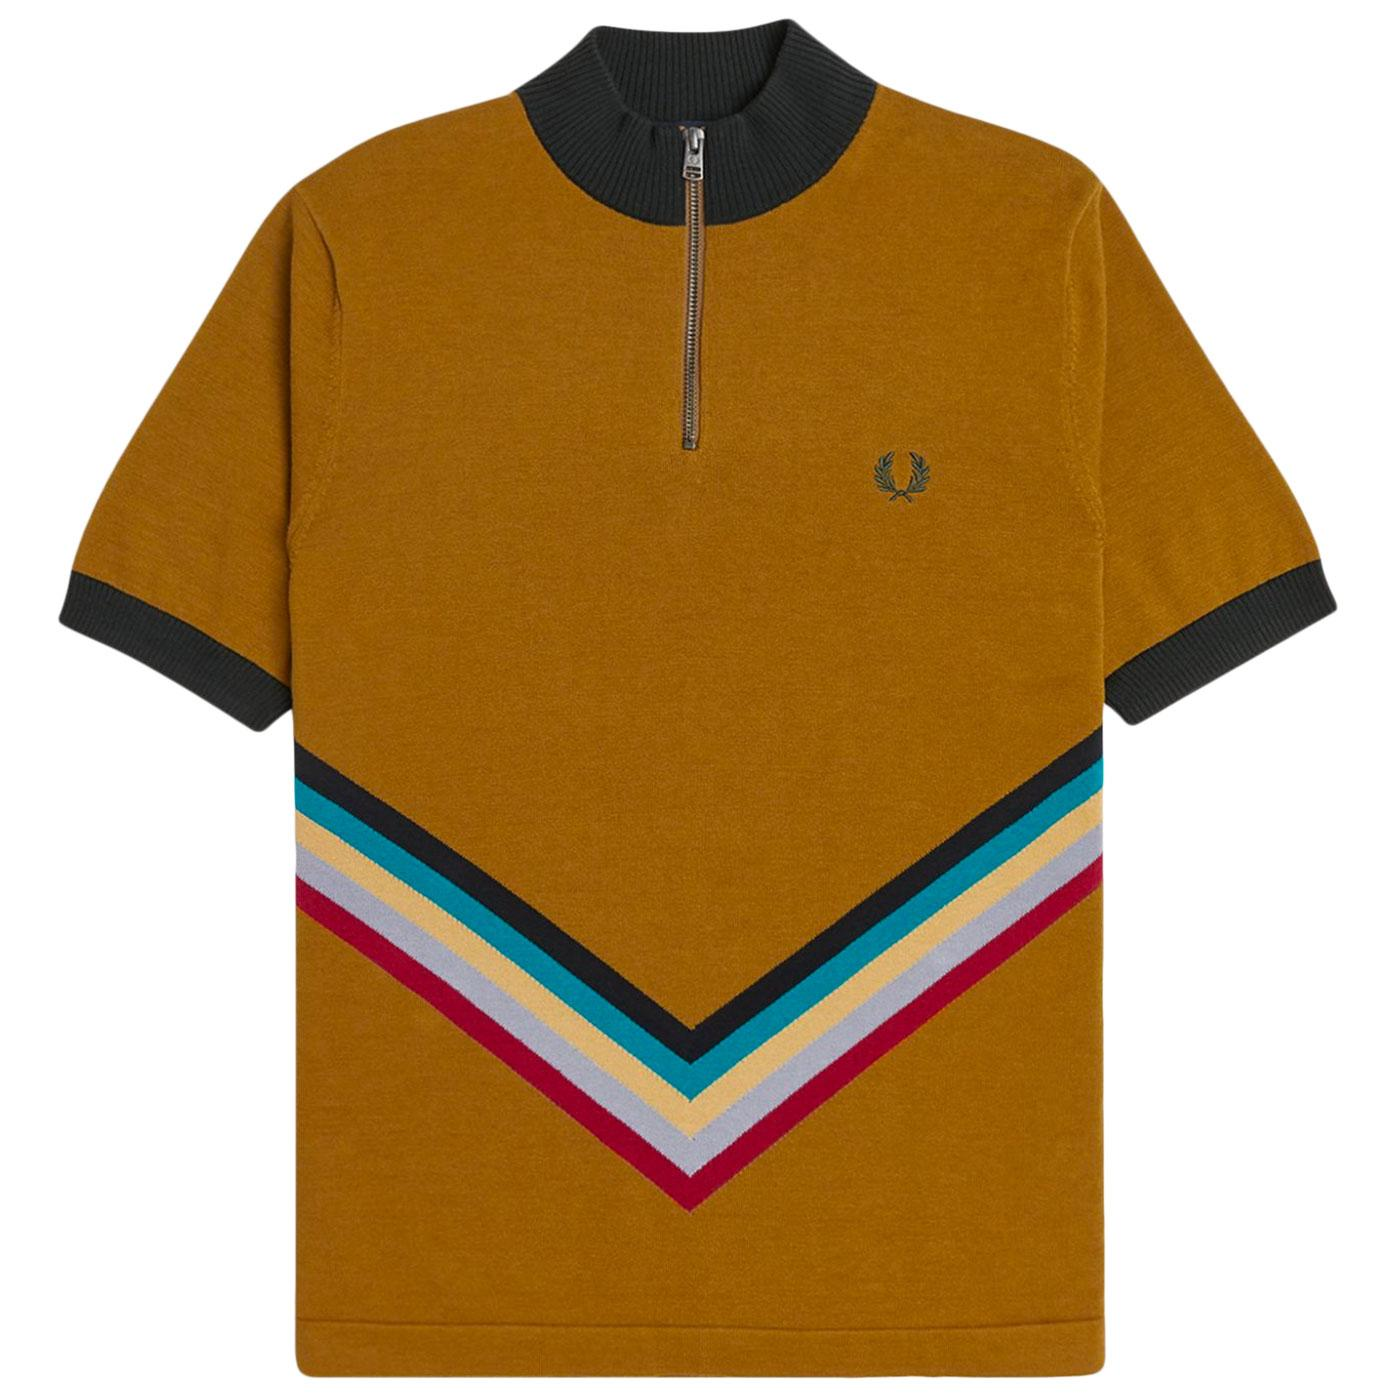 FRED PERRY K1529 Chevron Stripe Knit Cycling Top